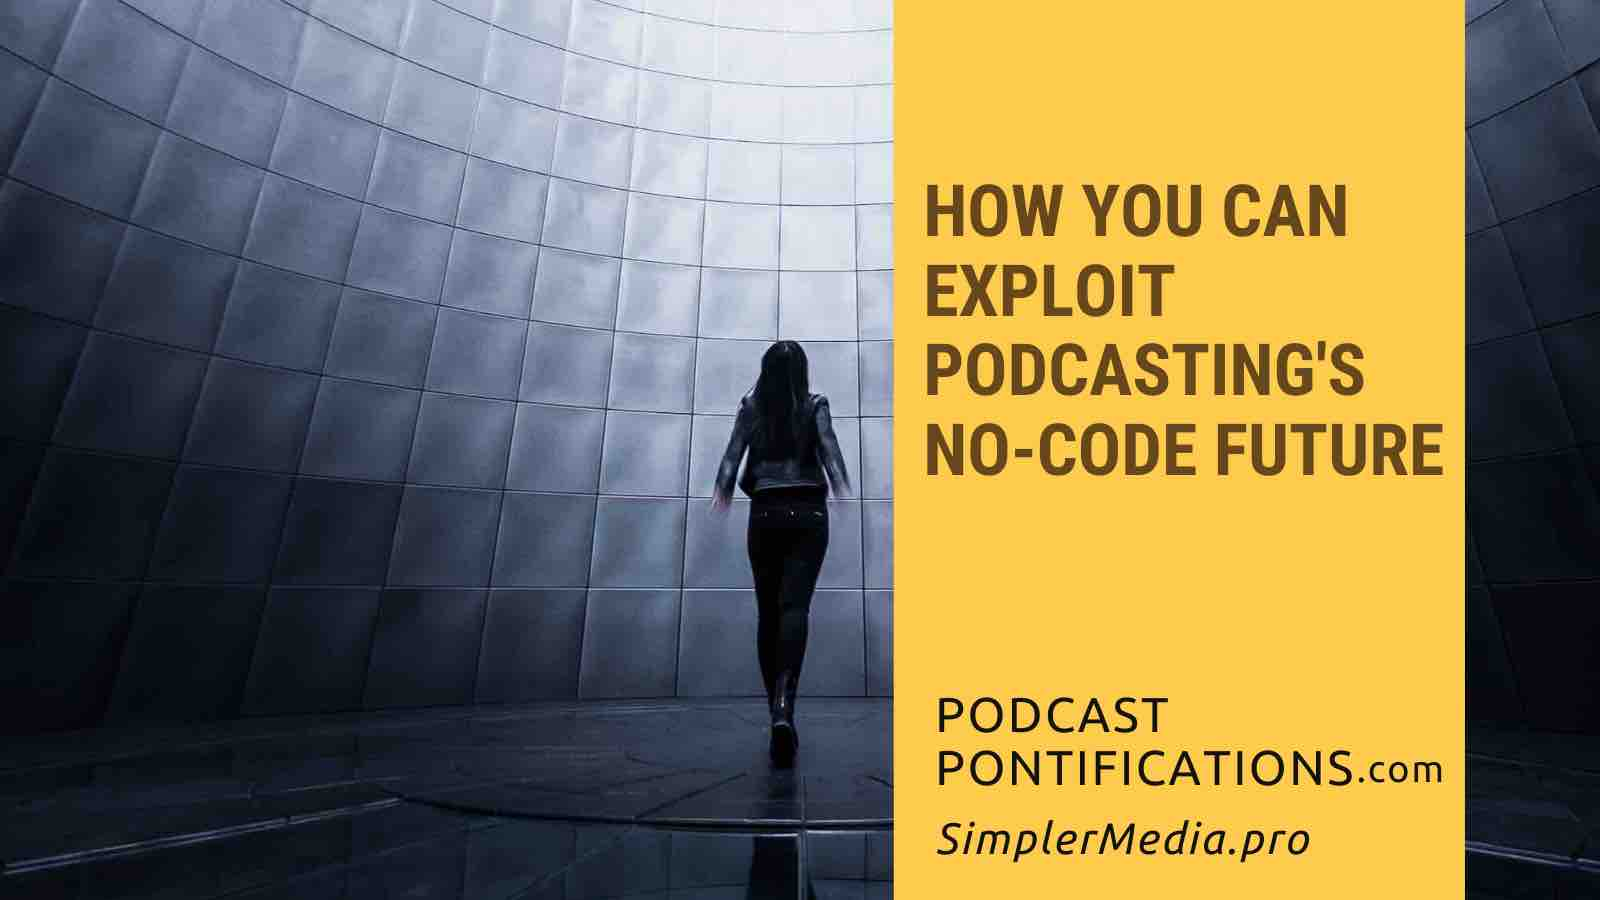 How You Can Exploit Podcasting's No-Code Future